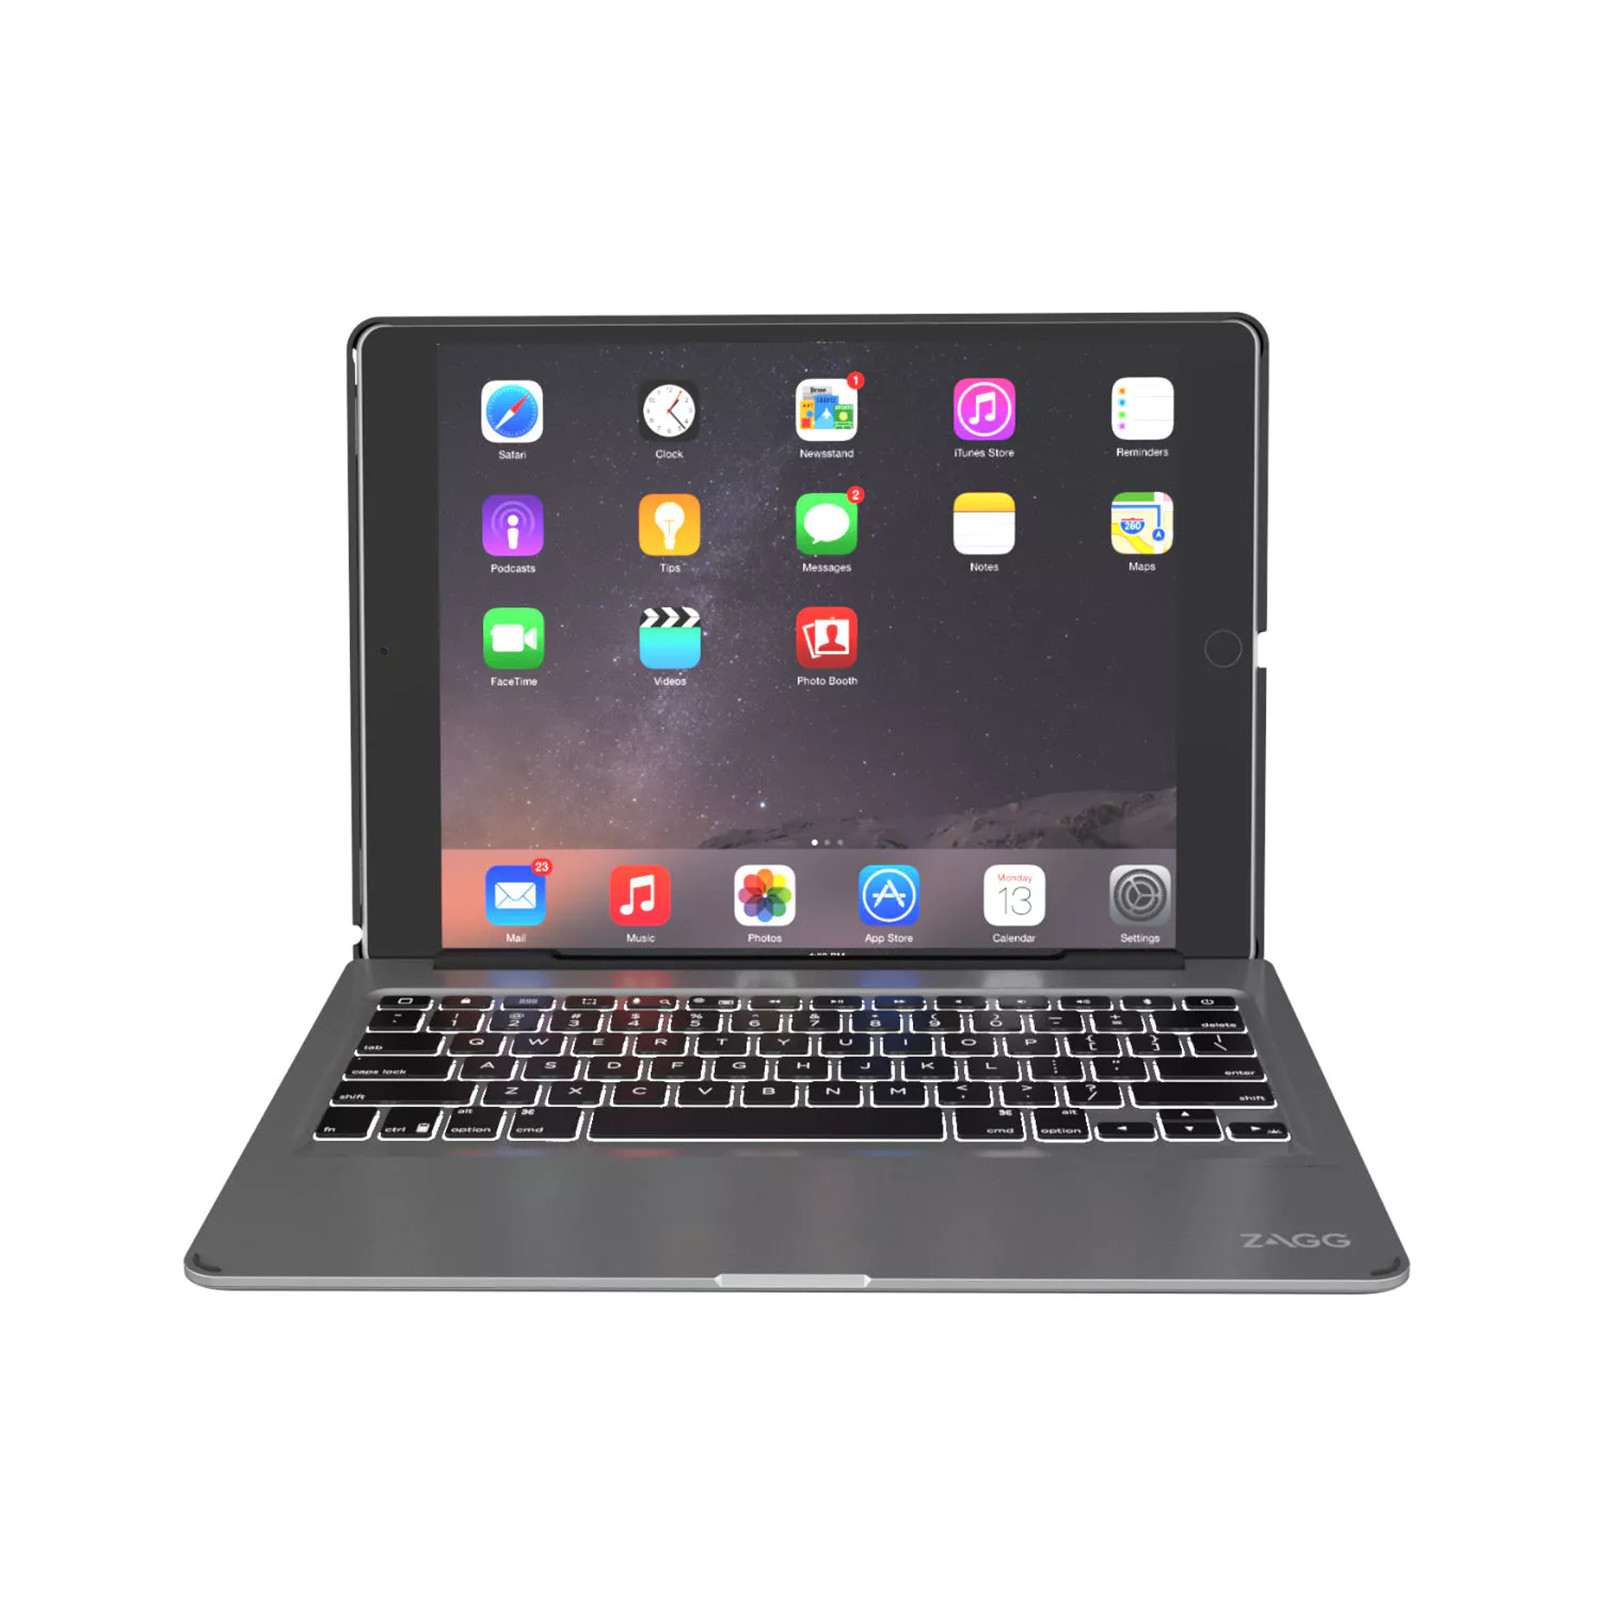 8068c130a93 ZAGG Slim Book Case with Keyboard for iPad Pro 12.9 (1st & 2nd Gen.)